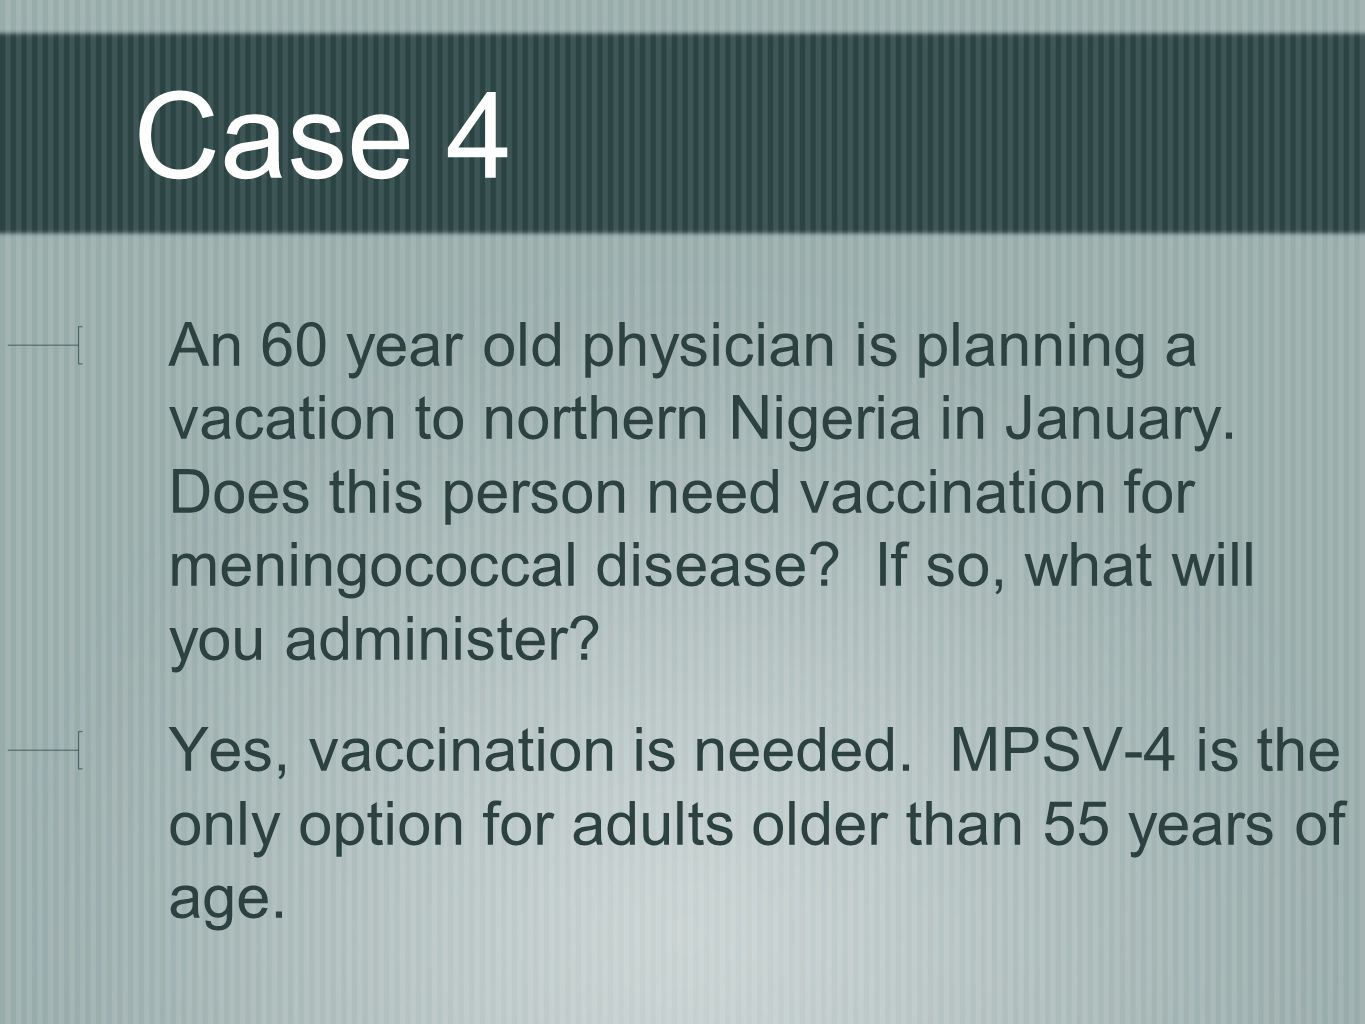 Case 4 An 60 year old physician is planning a vacation to northern Nigeria in January. Does this person need vaccination for meningococcal disease? If